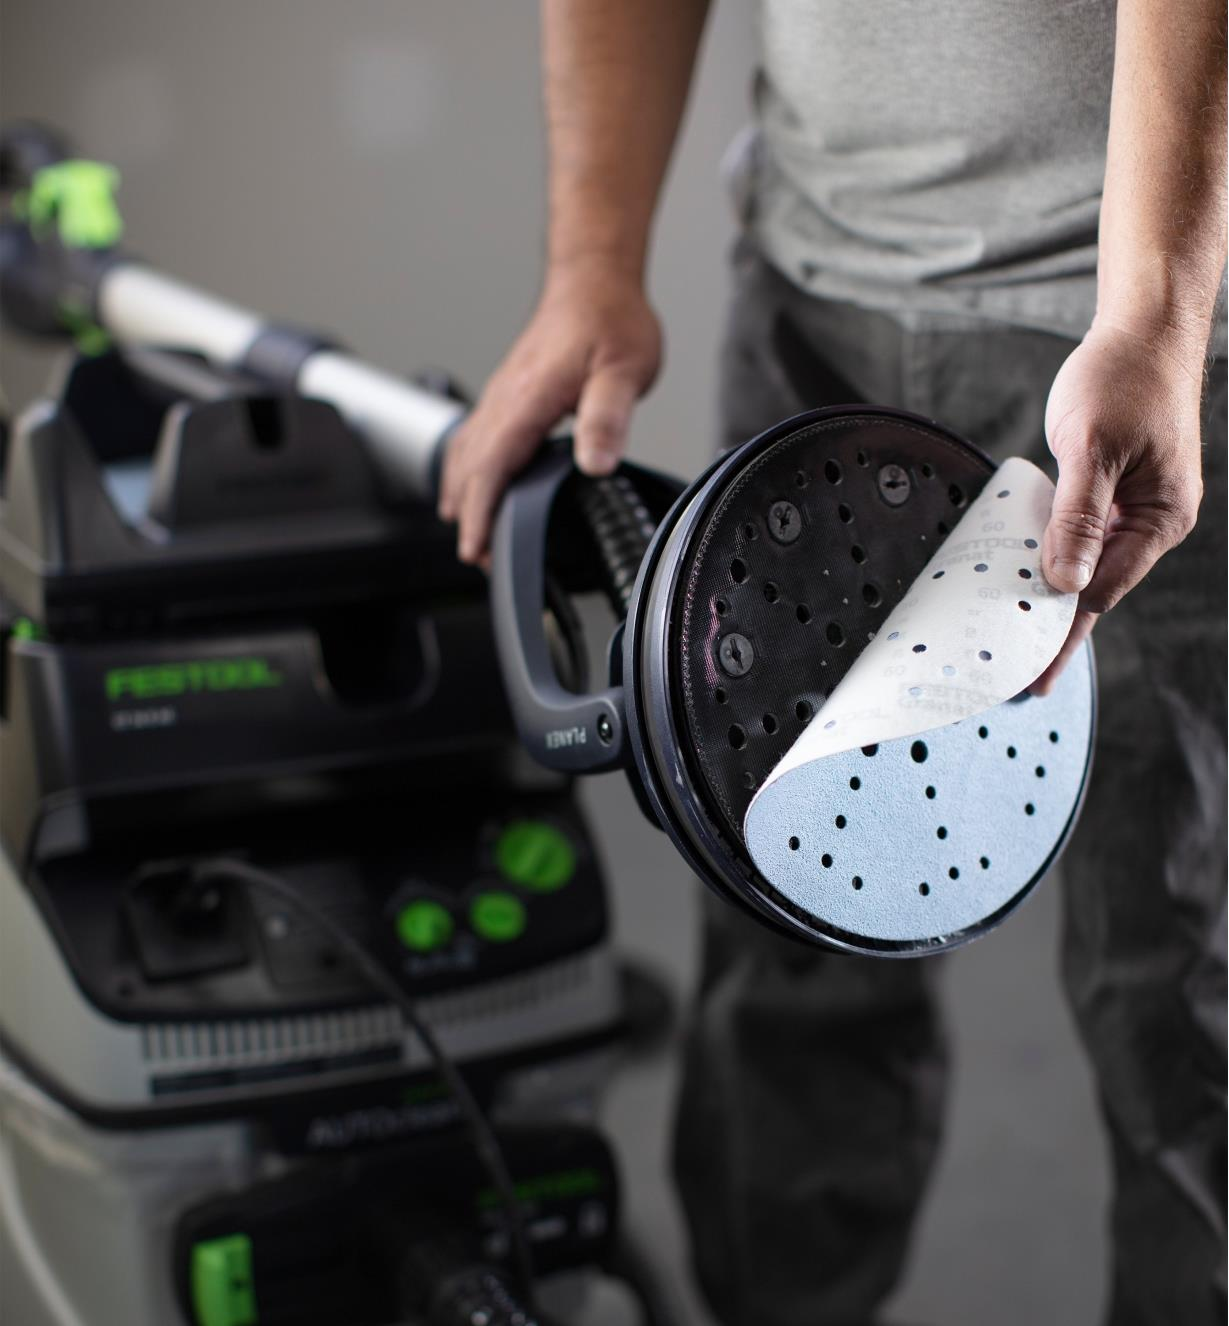 A piece of sandpaper is applied to the head of a Planex sander that is being held in place by the tool holder